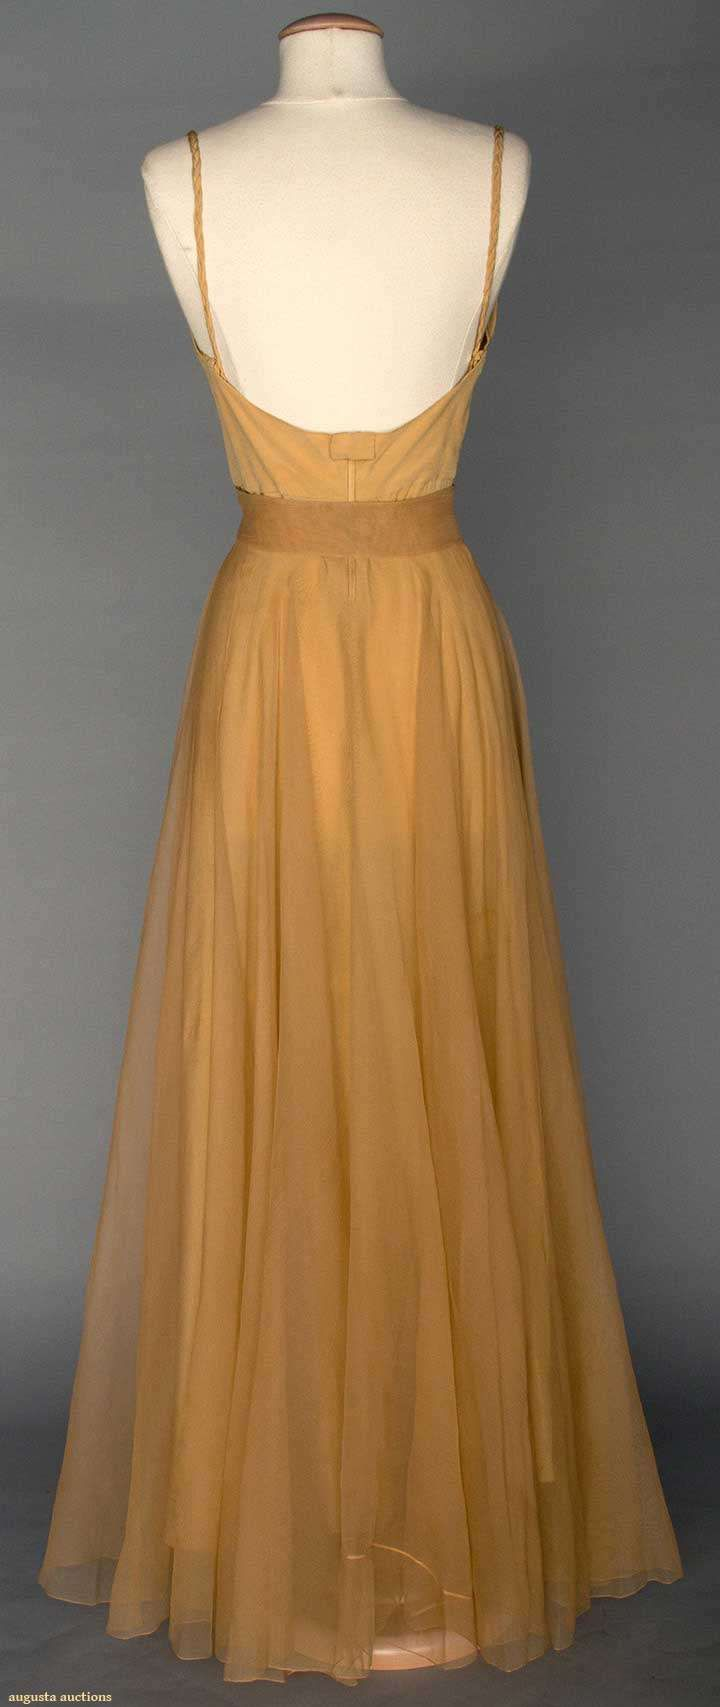 """VALENTINA SILK EVENING SKIRT, 1930s Unlabeled & bought at Valentina Schlee's personal estate sale #6951 Christie's East, 1990: tan silk illusion long open-front skirt w/ CF laced waistband, full length tan silk slip w/ braided narrow straps, W 26"""", L 45"""""""